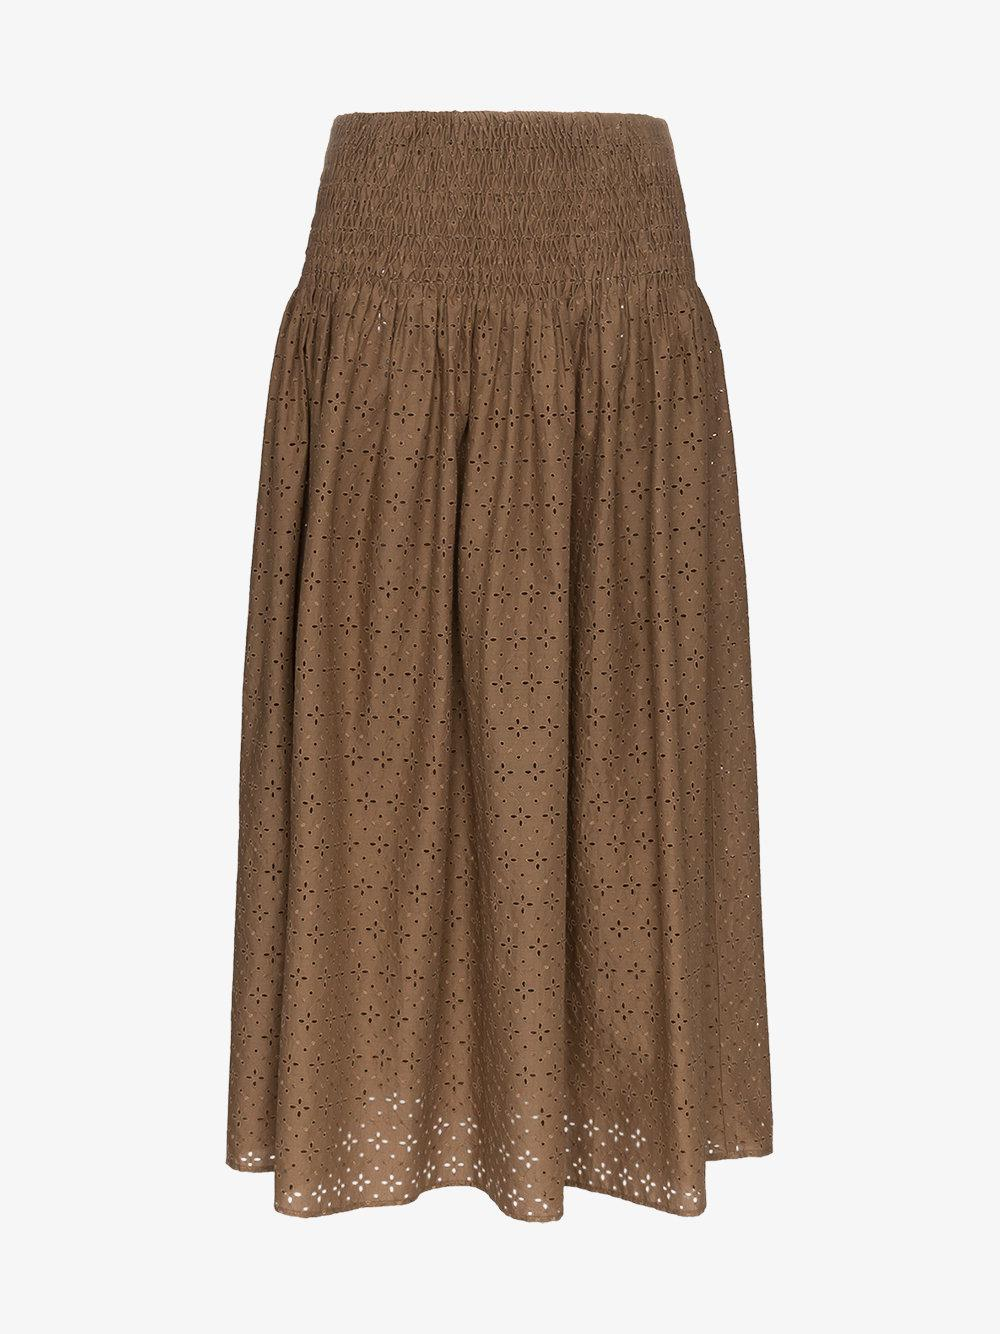 Sale Outlet Abacos embroidered smocked cotton skirt - Brown Marysia Swim Pay With Paypal Cheap Price Many Kinds Of For Sale With Paypal Low Price auinQ3